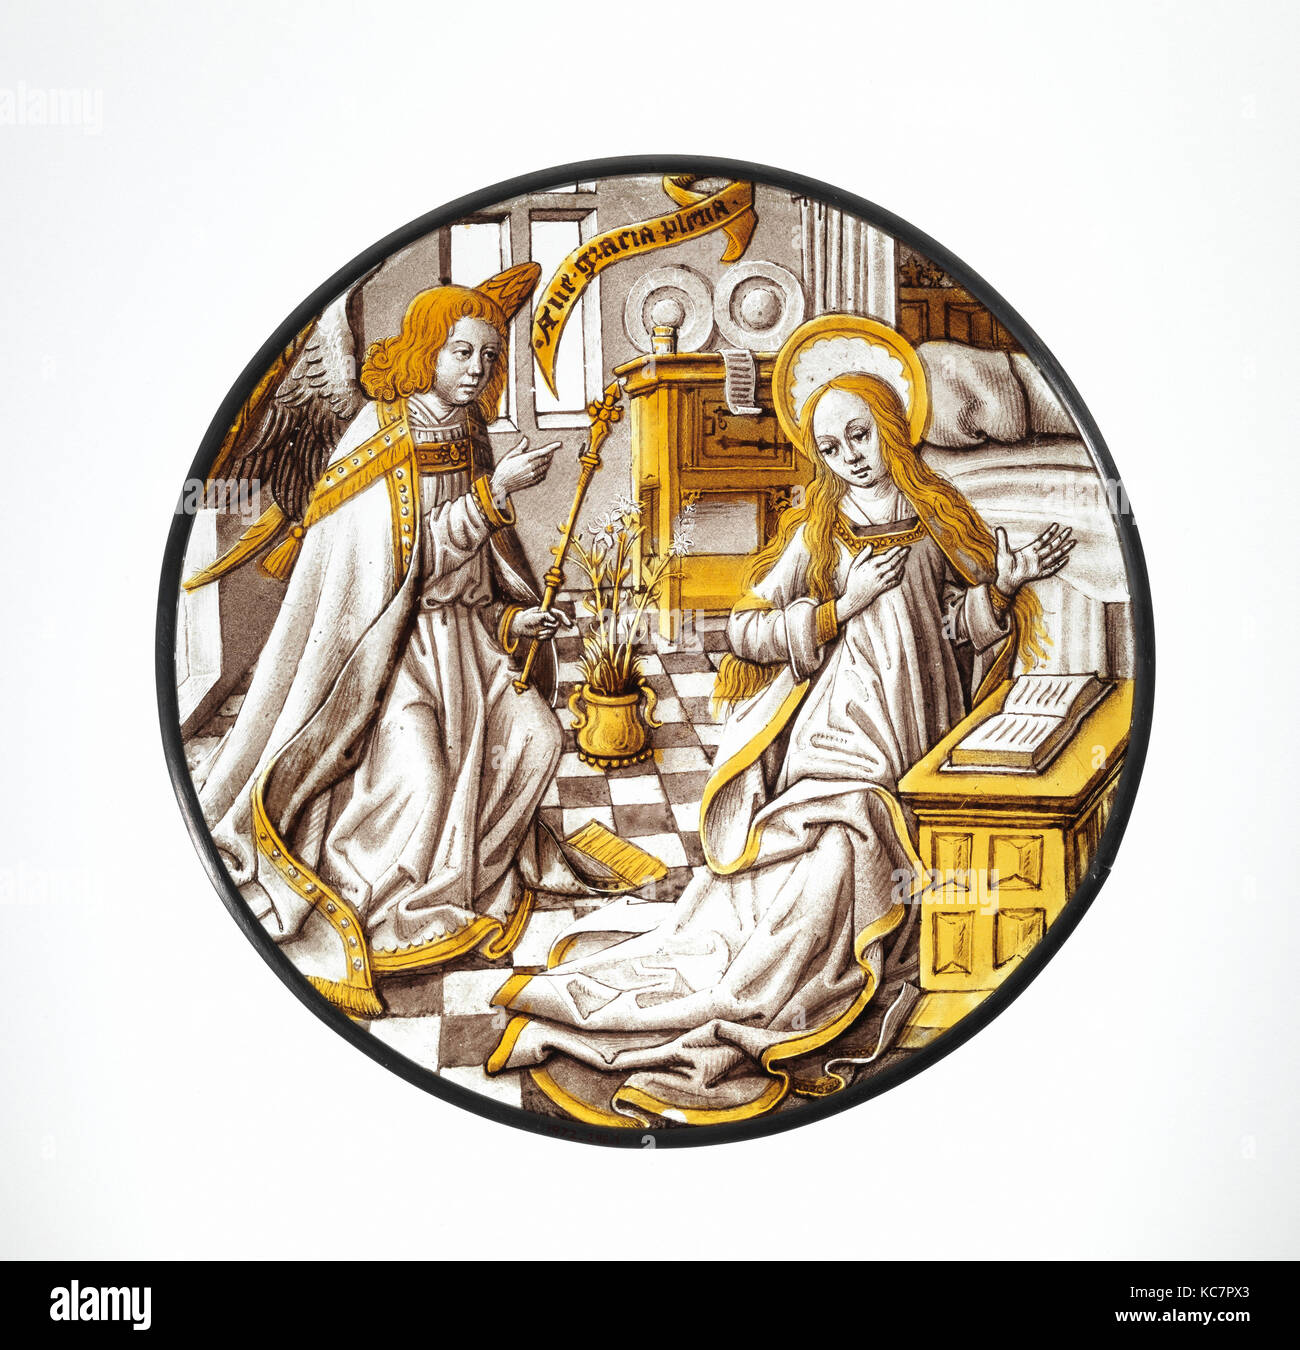 Roundel with Annunciation to the Virgin, 1500–1510, South Netherlandish, Colorless glass, vitreous paint and silver - Stock Image